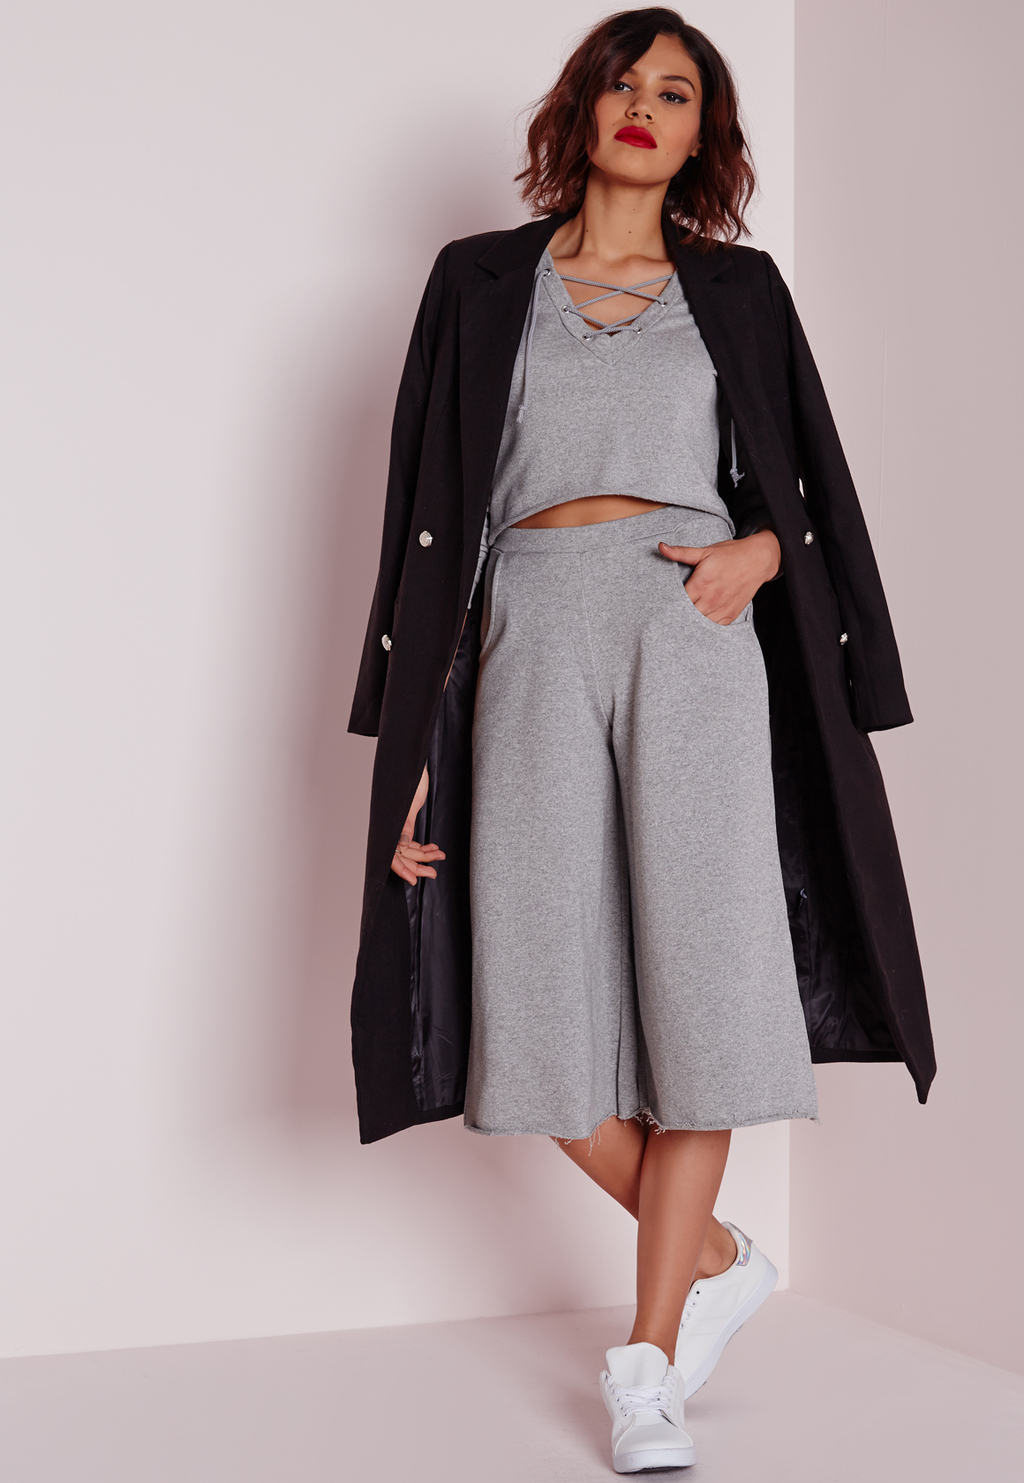 Loop Back Jersey Culottes Grey, Grey - pattern: plain; waist: high rise; predominant colour: light grey; occasions: casual, creative work; fibres: polyester/polyamide - stretch; pattern type: fabric; texture group: jersey - stretchy/drapey; season: a/w 2015; wardrobe: basic; style: culotte; length: below the knee; fit: a-line